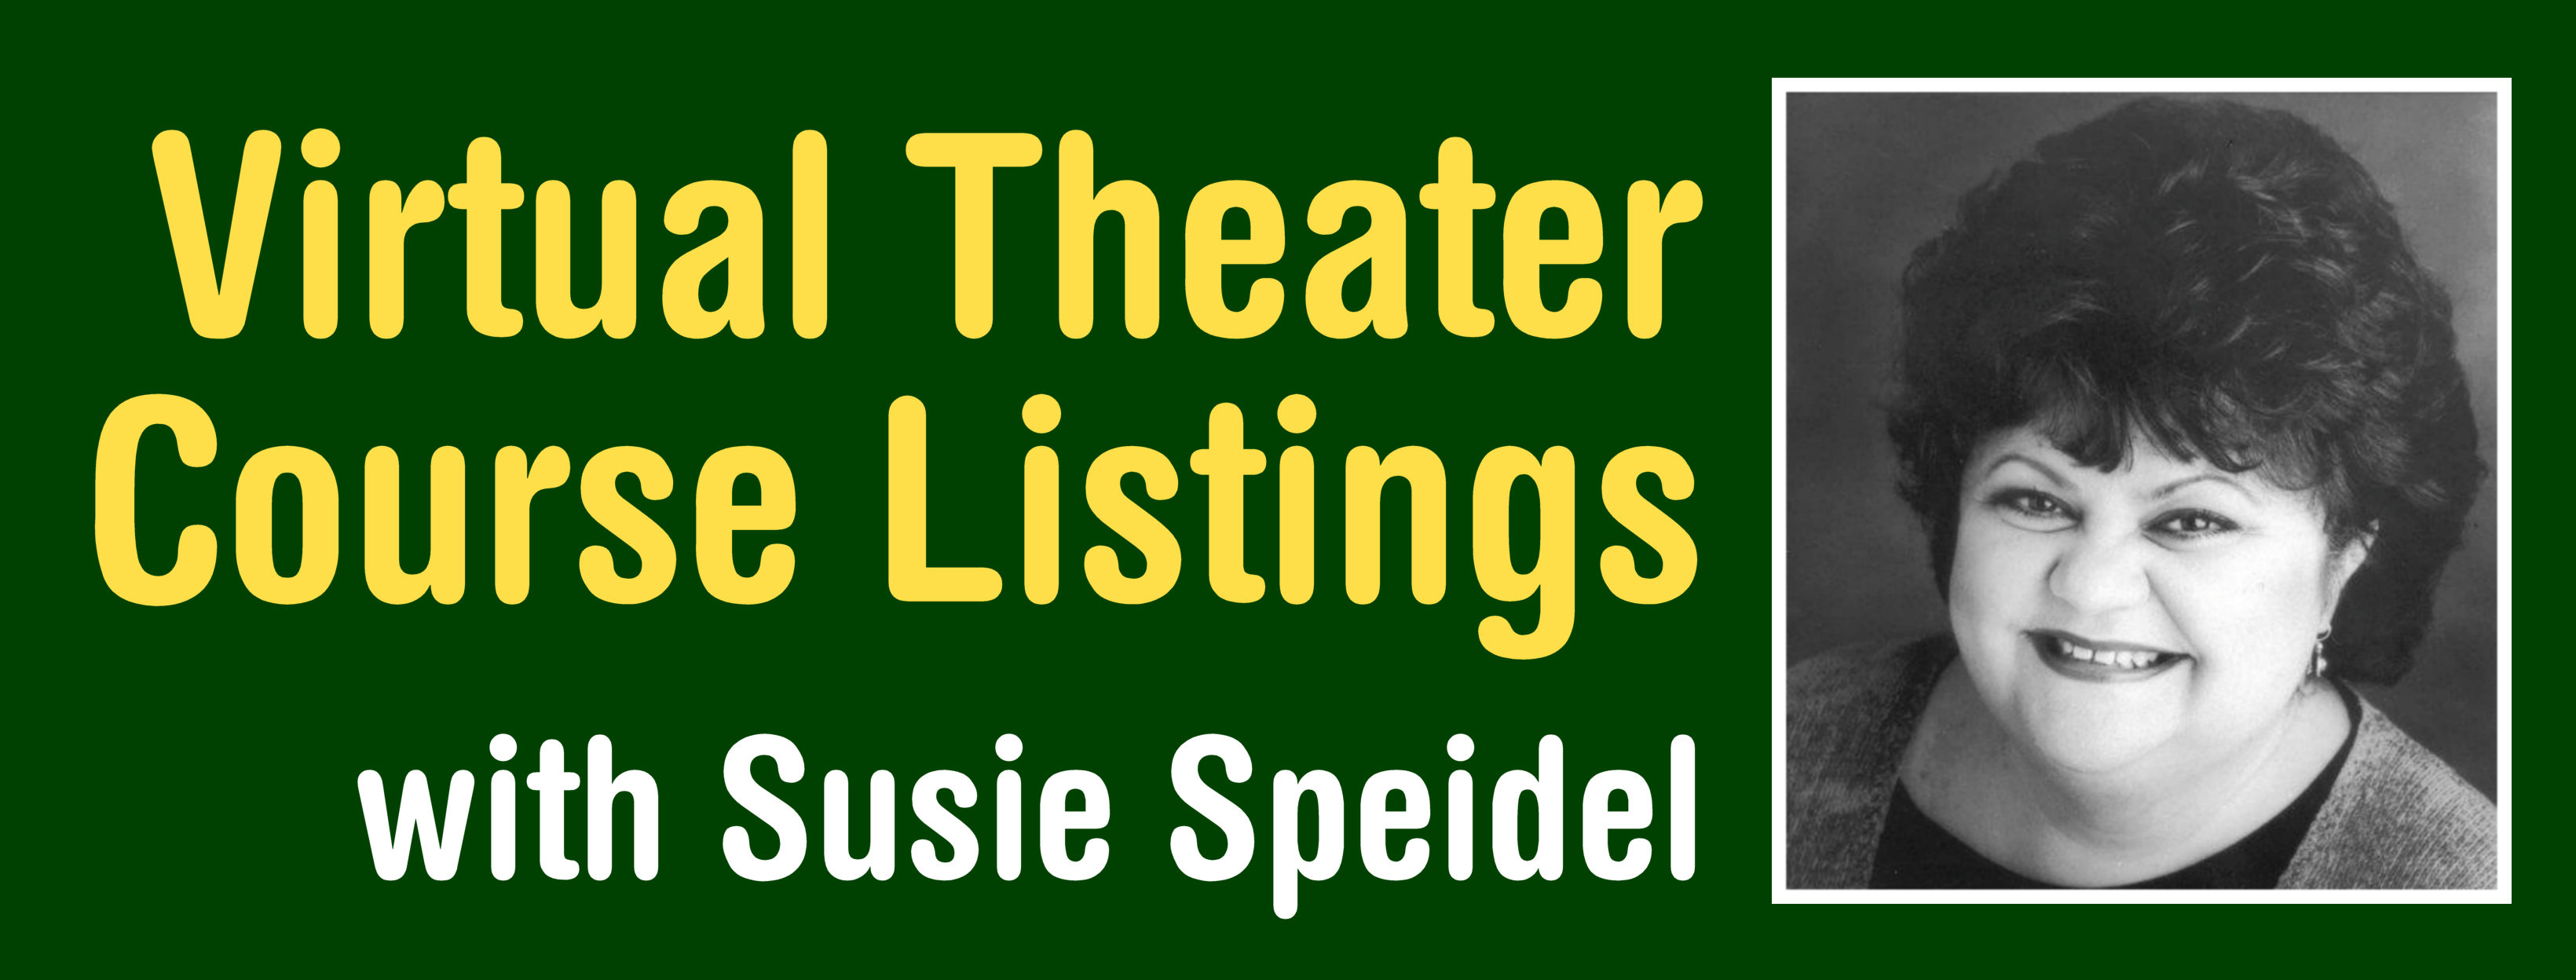 Virtual Theater with Susie Speidel